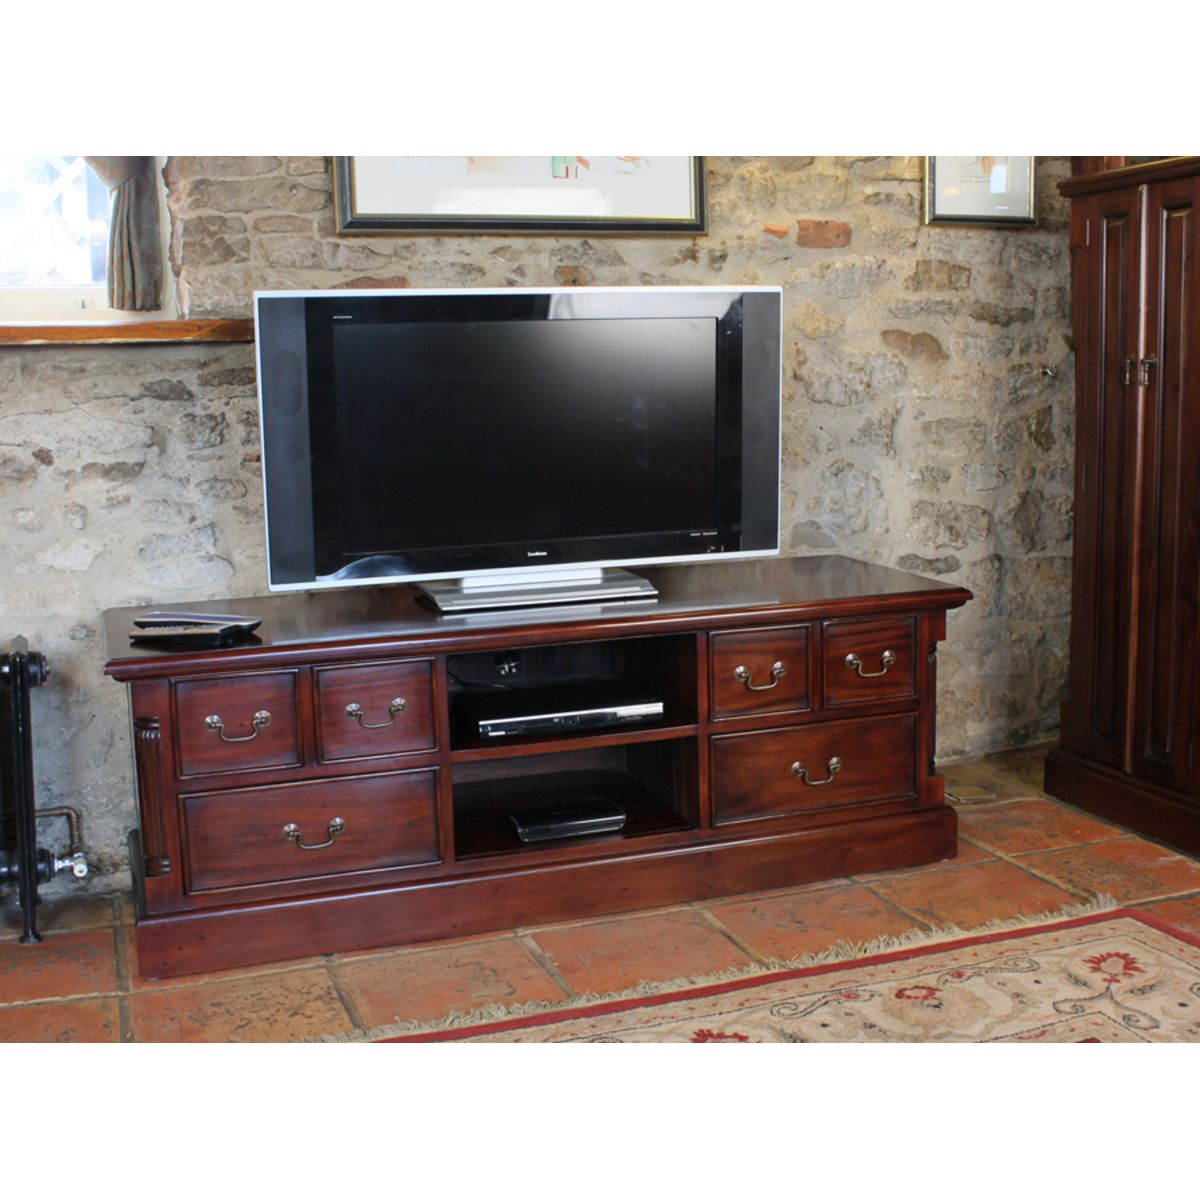 Mahogany Widescreen Television Cabinet Wooden Furniture Store